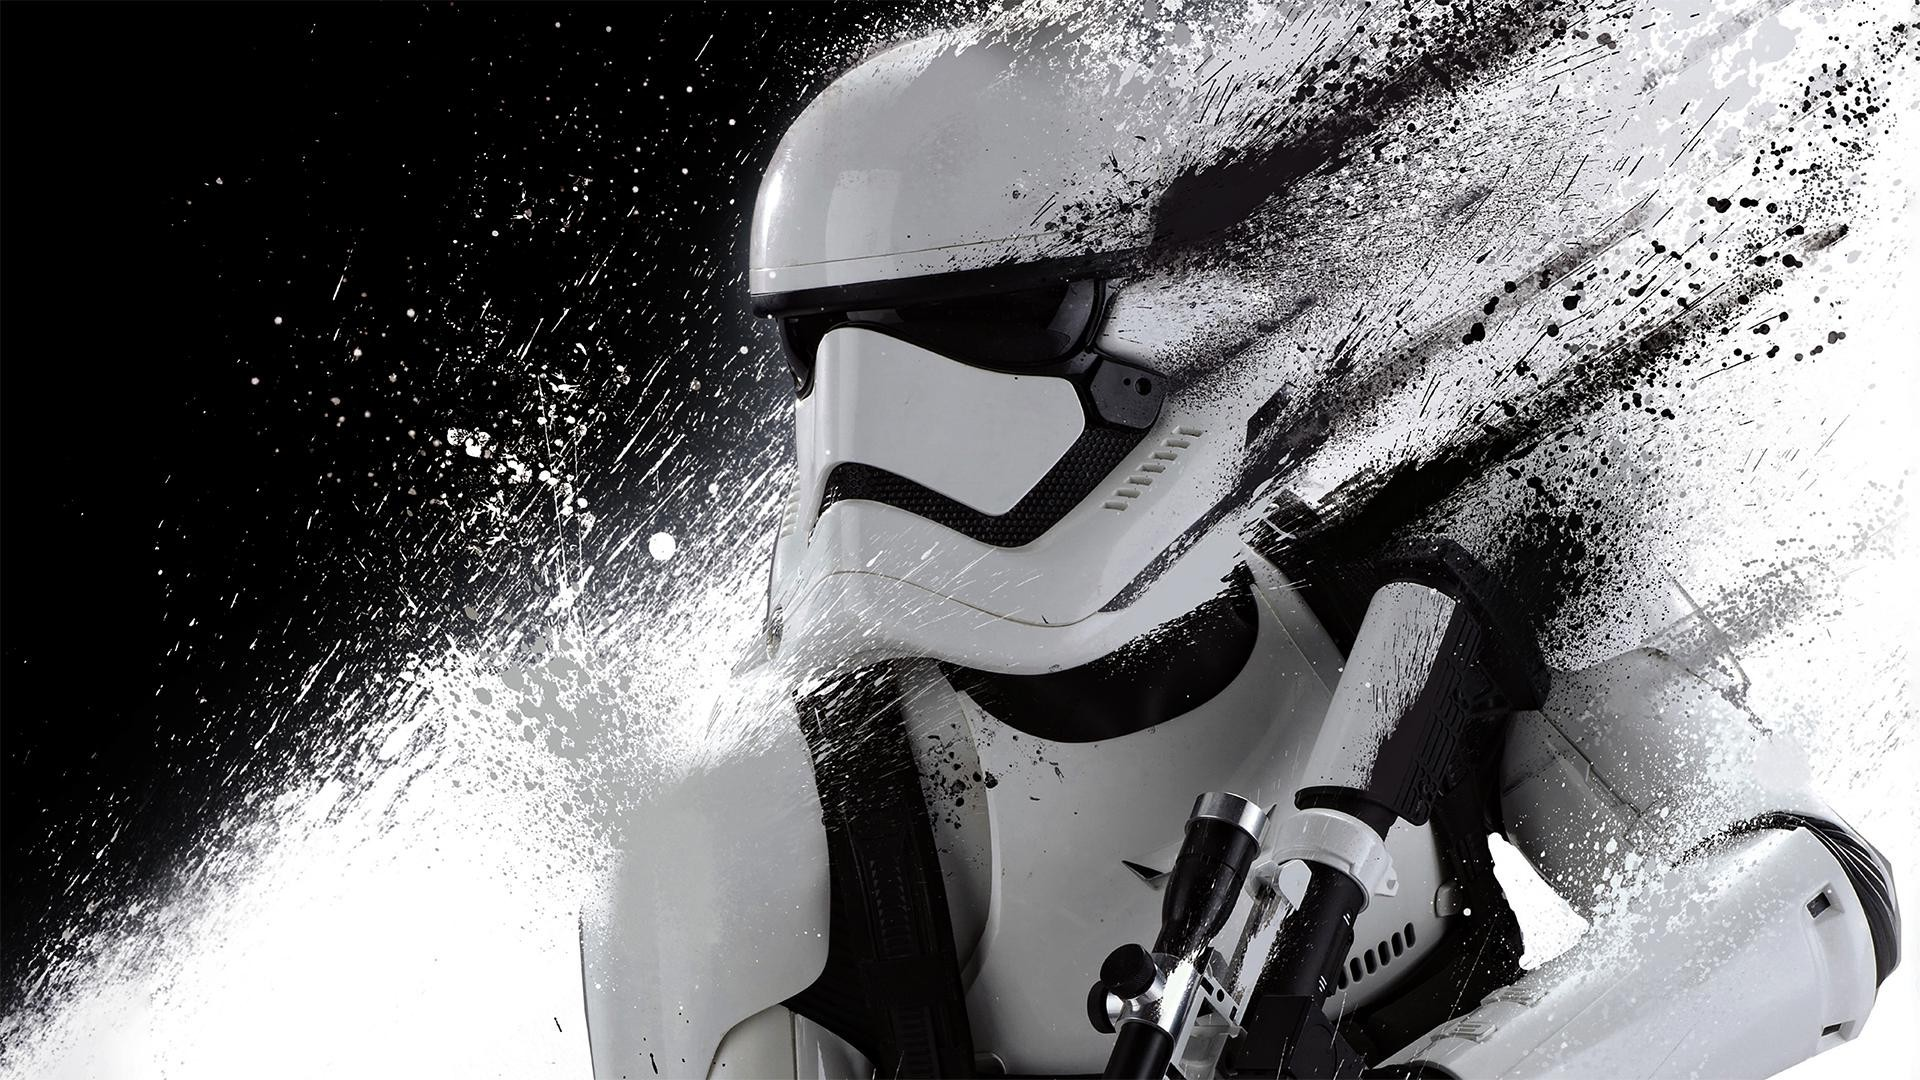 Hd Stormtrooper Wallpaper 66 Images